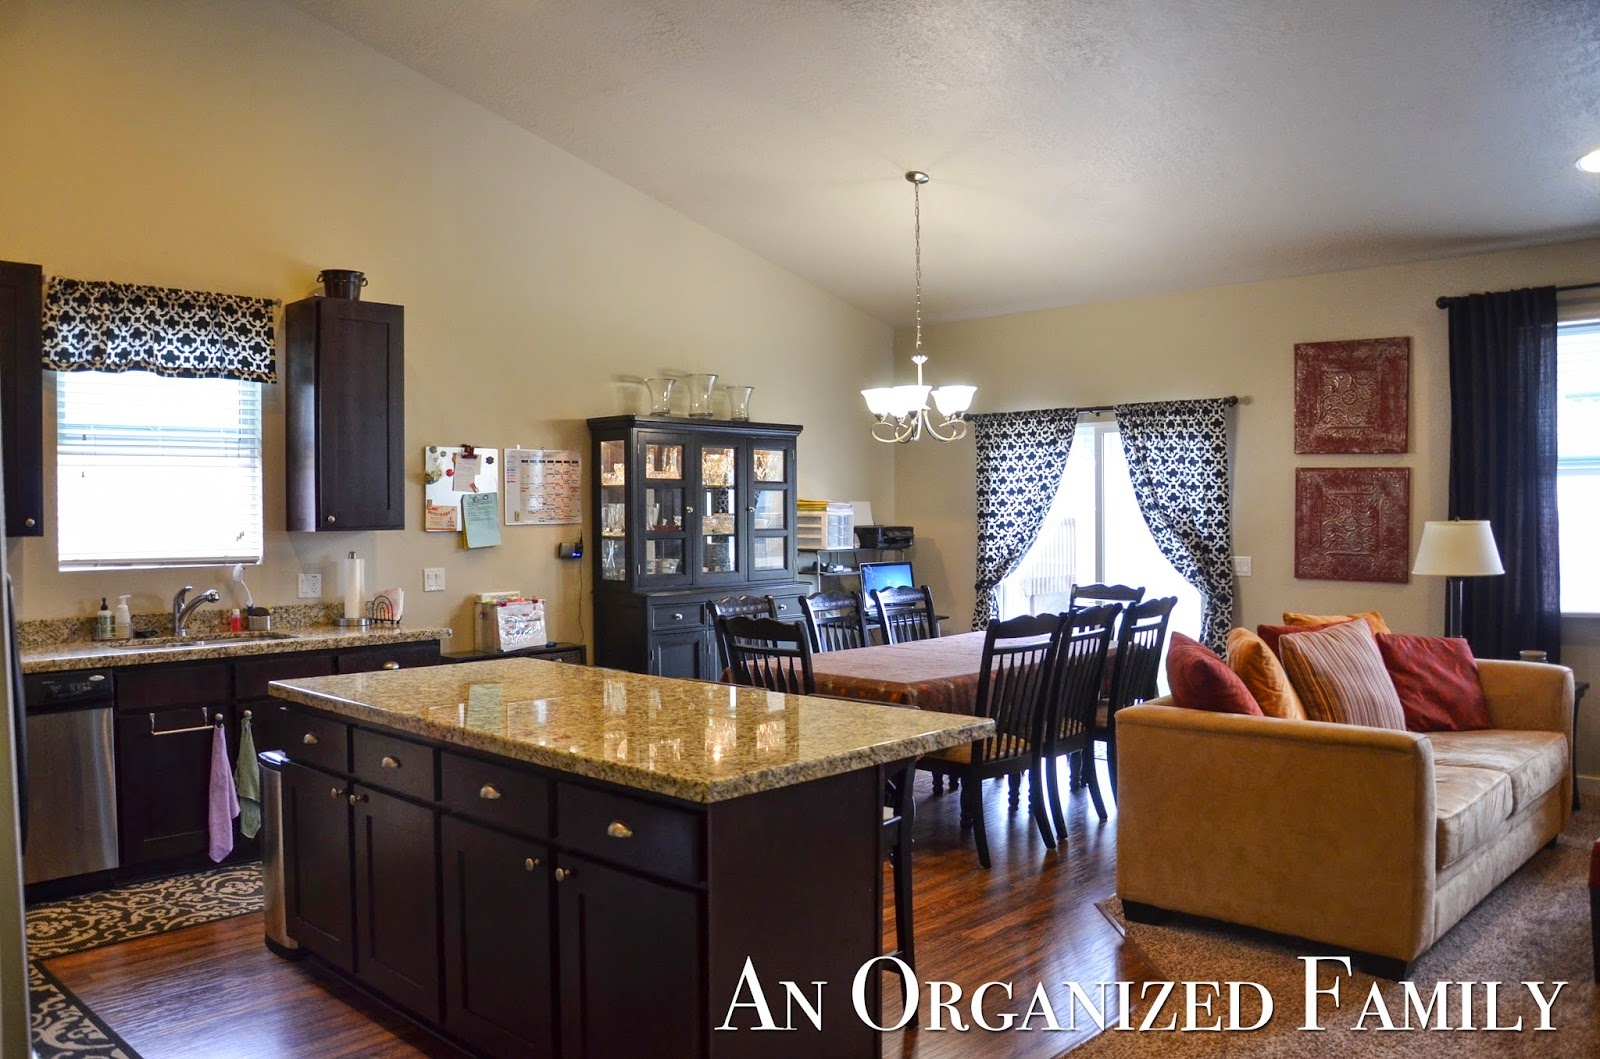 My Kitchen And Dining Area Along With The Living Room Was Another One Of Favorite Spaces In This House I Loved Vaulted Ceilings Openness